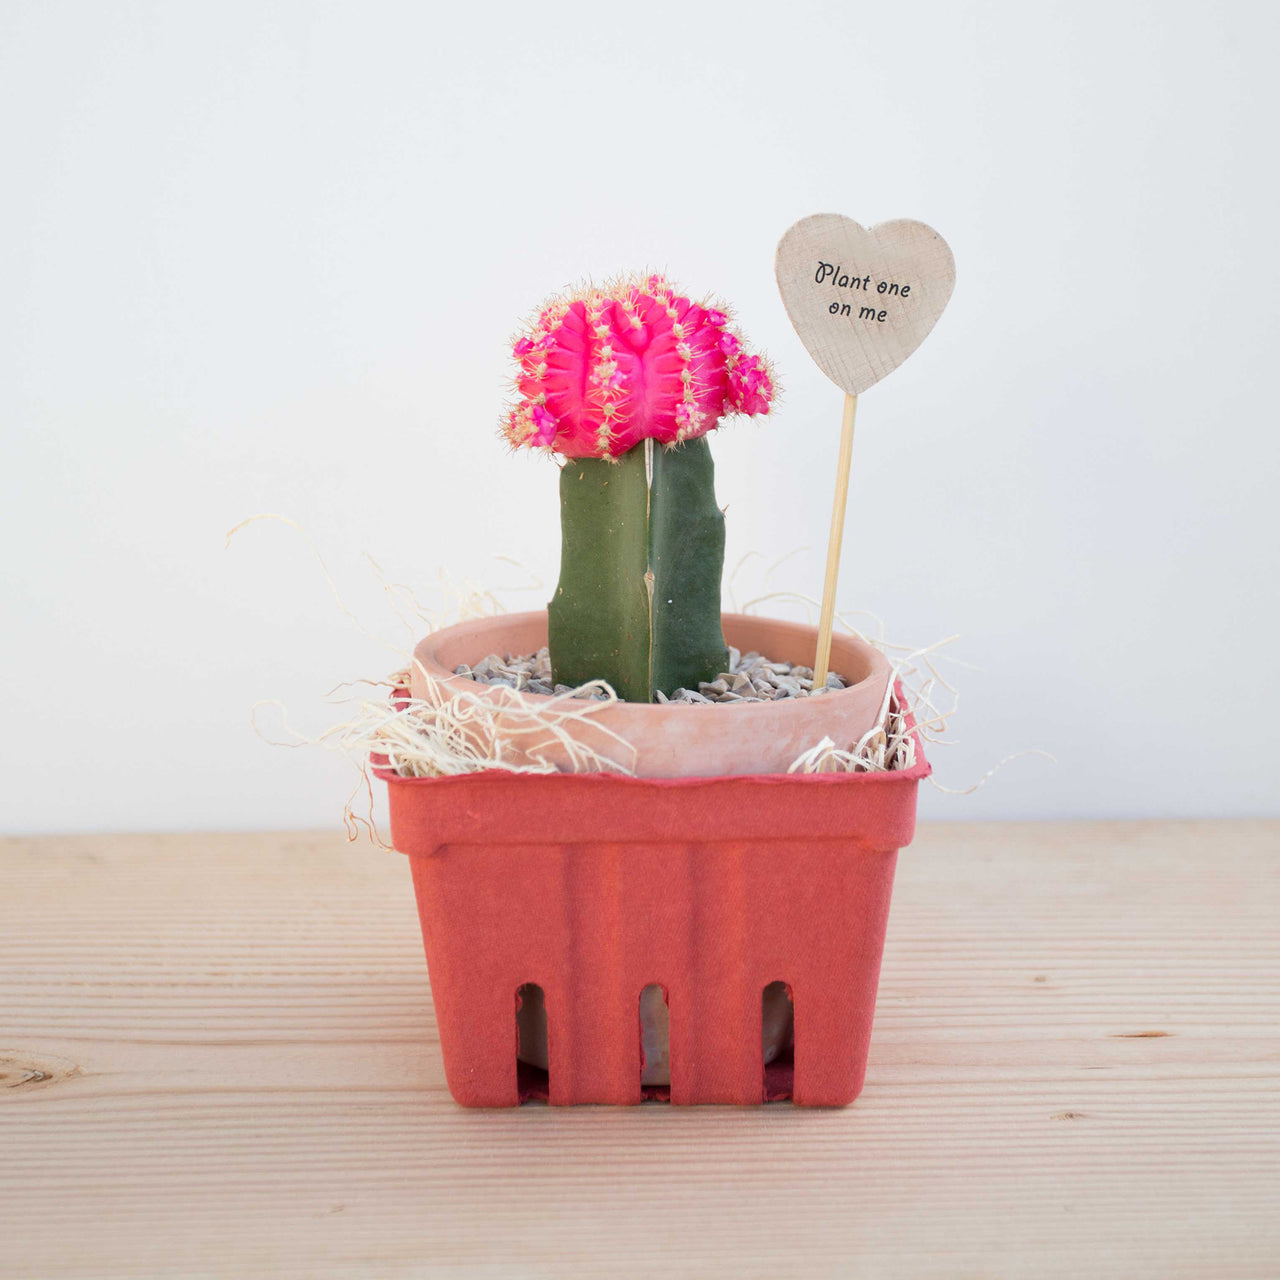 Moon Cactus Love Note